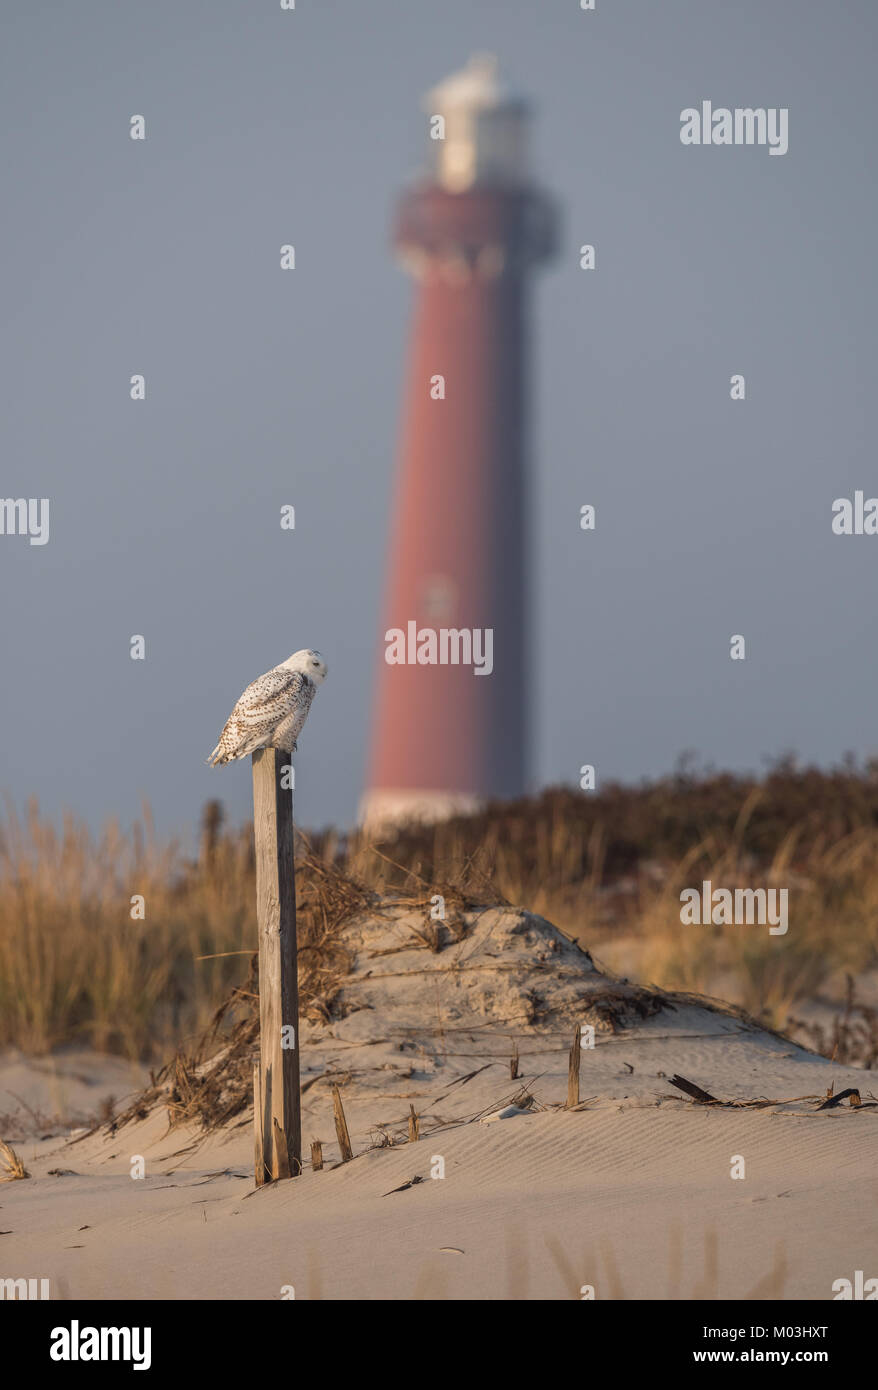 Snowy Owl at the Beach - Stock Image